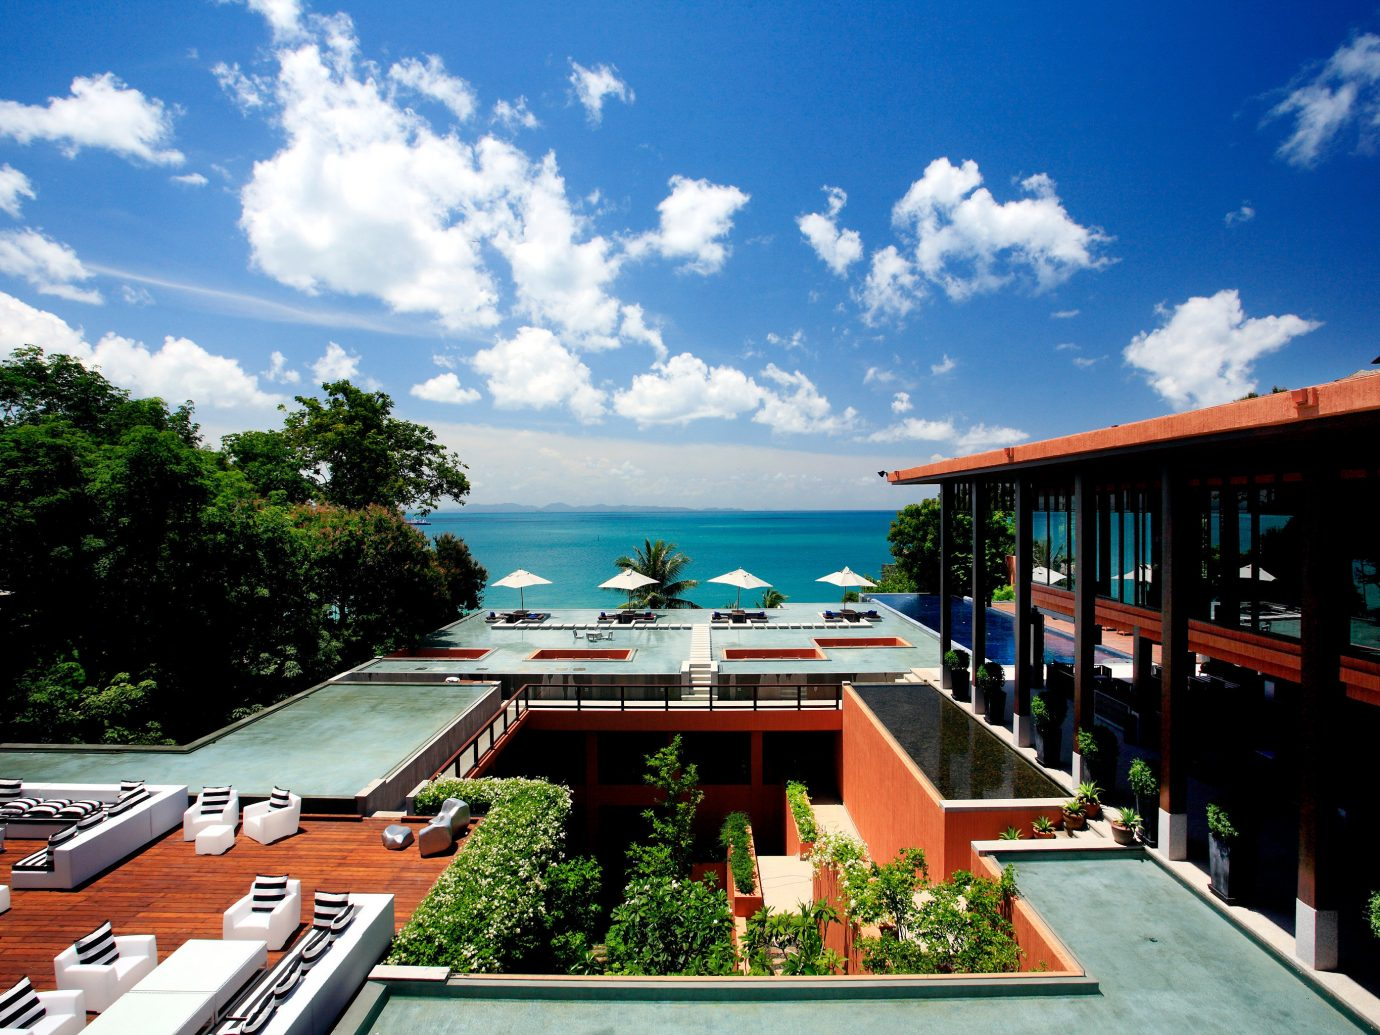 Beach Beachfront Exterior Hotels Ocean Phuket Resort Thailand sky outdoor tree property vacation estate real estate residential area home